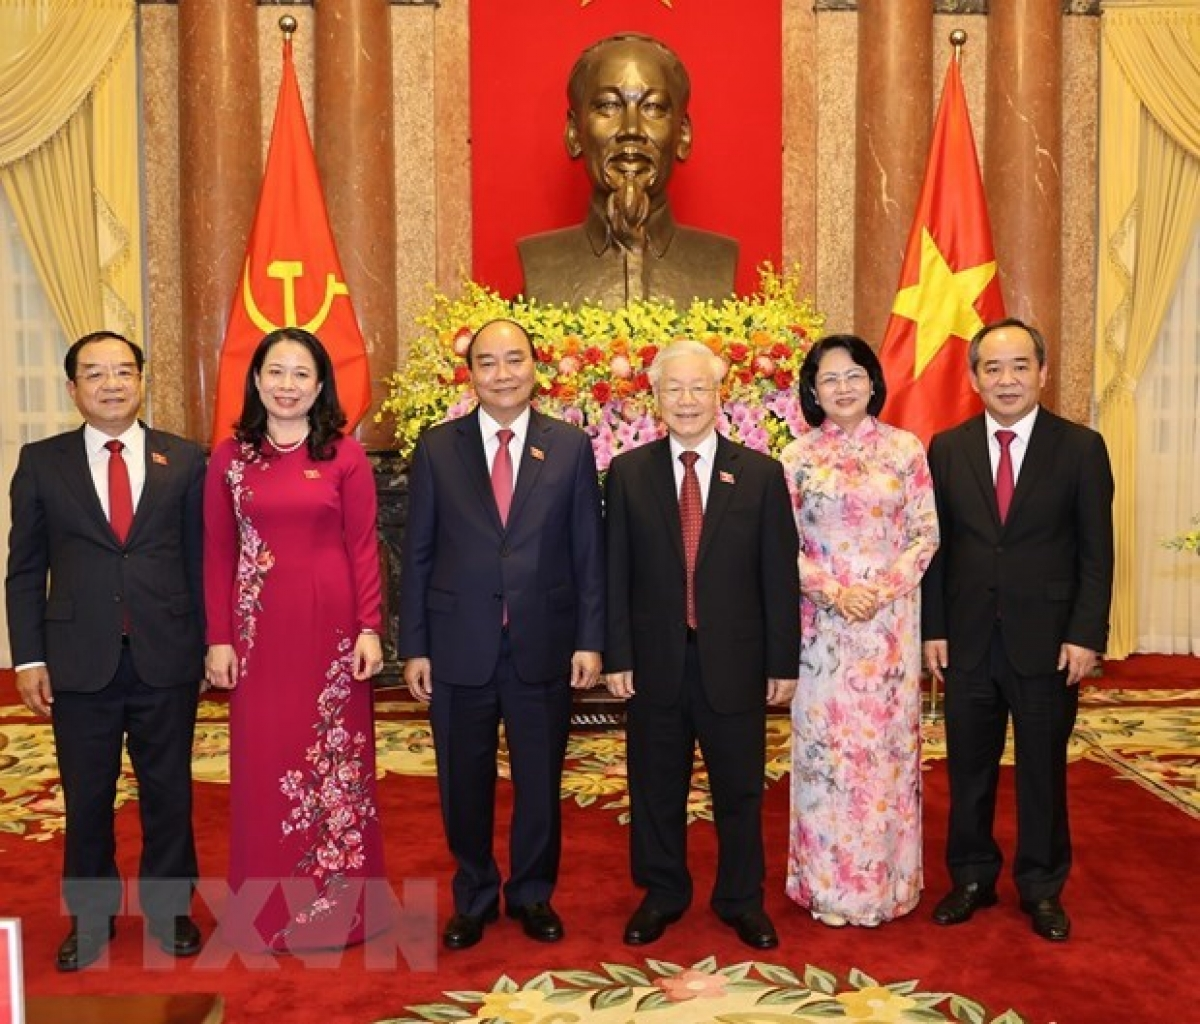 Party General Secretary and former President Nguyen Phu Trong (third, right), former Vice PresidentDang Thi Ngoc Thinh(second, right), President Nguyen Xuan Phuc (third, left), Vice President Vo Thi Anh Xuan (second, left), and other officials at the duty handover ceremony on April 6 (Photo: VNA)